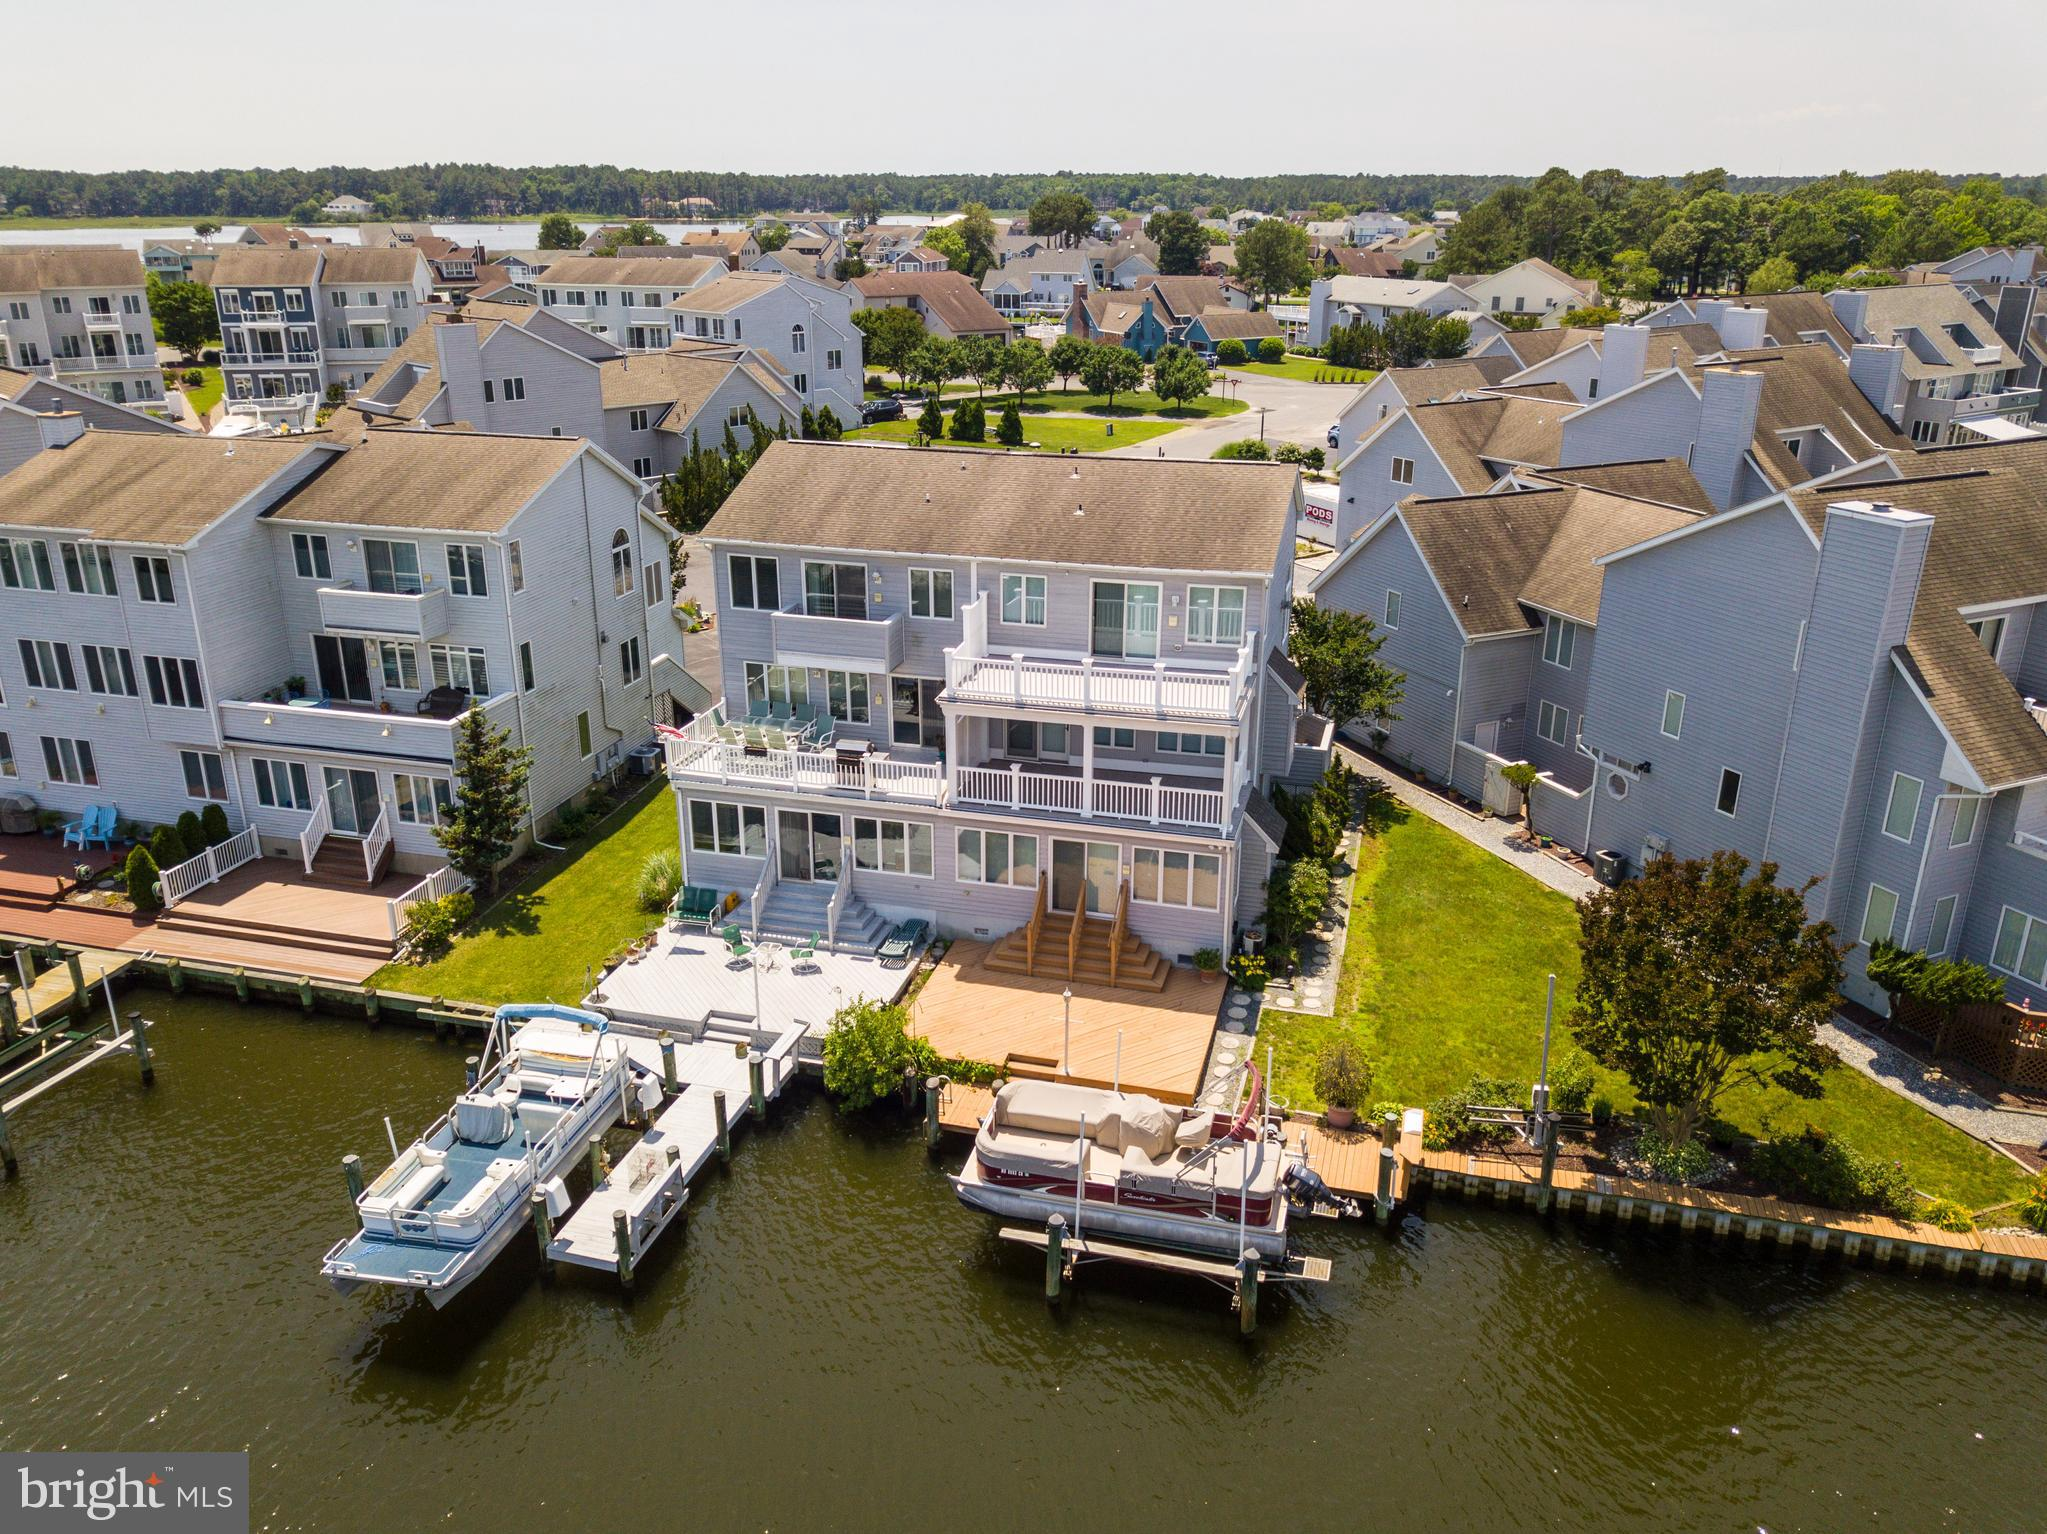 Three-Level Waterfront Townhome with Private Pier, Boat Lift, & Rear Multi-Level Decks! Garage with HVAC has insulated door, walls, utility sink & keyless entry.  First level contains a Family room with Kitchenette, Full Bath & newer gas heating stove.  Master Suite with private balcony, vaulted ceiling, walk-in-closet, whirlpool tub & ceramic tile.  Efficient Gas Polaris Heating.  LR contains a  2nd Fireplace!